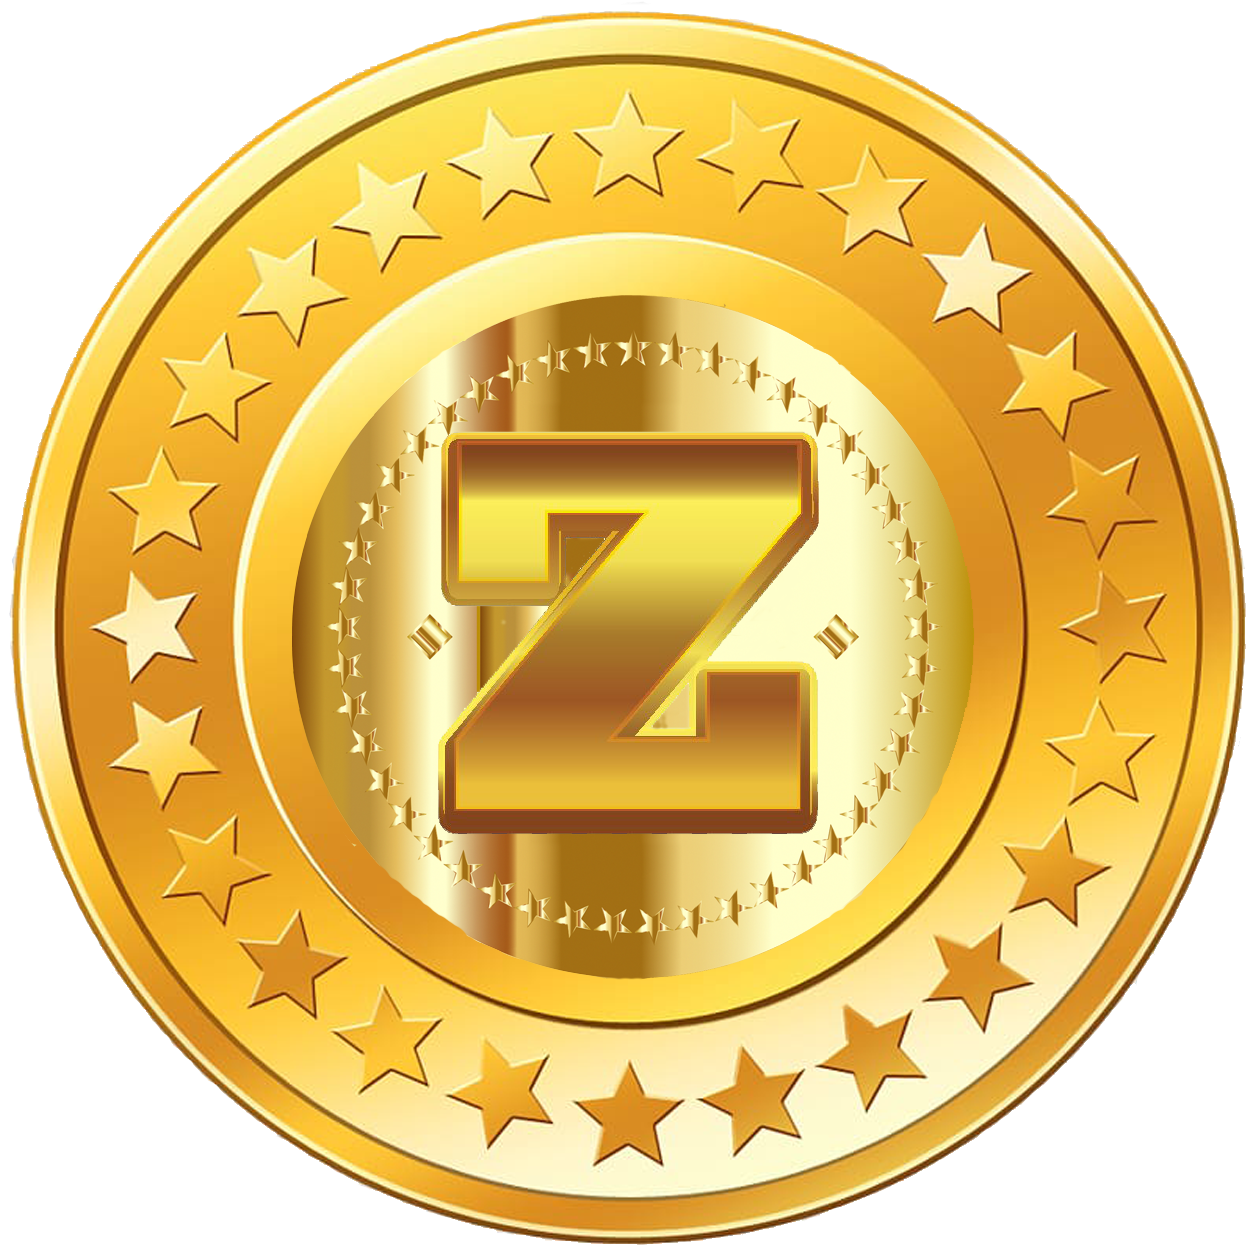 Pictures gallery of Zinkod, Zingicoin, Zin, Зинкоин, токен, Zinkod is an open book, in which everyone can make his own chapter.